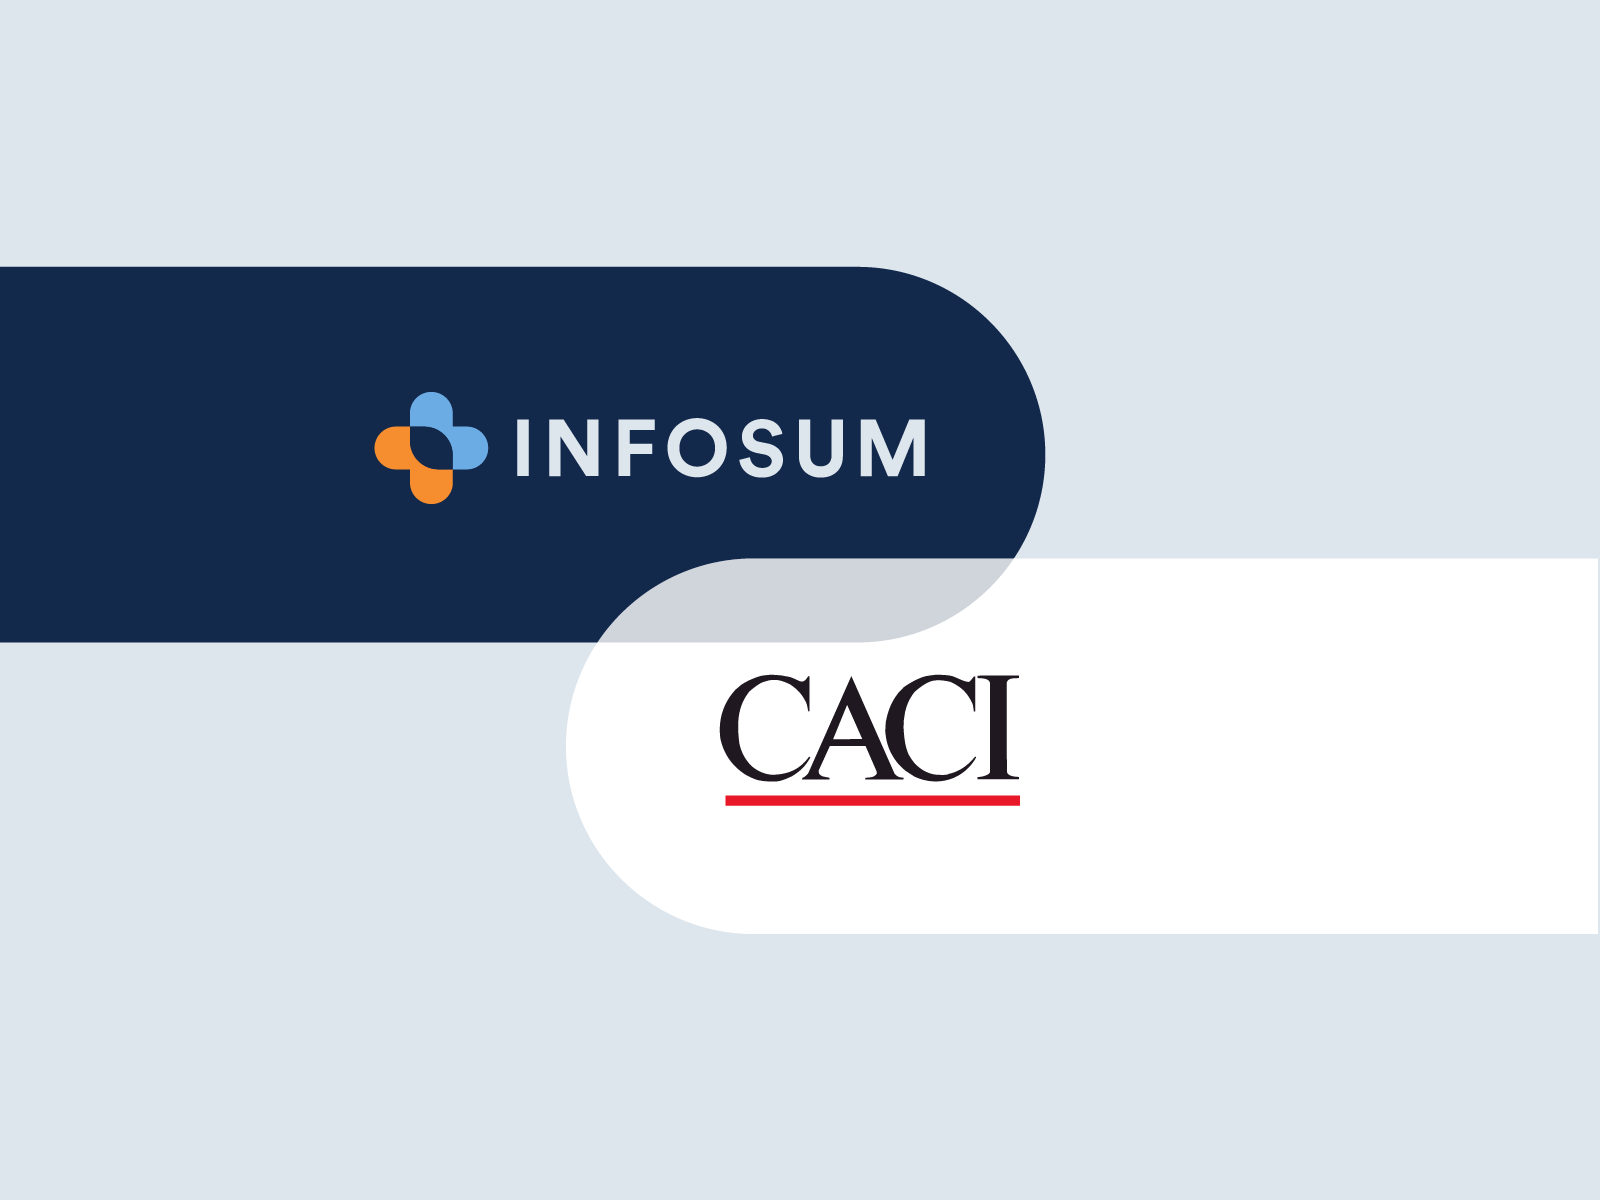 Enrich knowledge and reach new customers with InfoSum & CACI